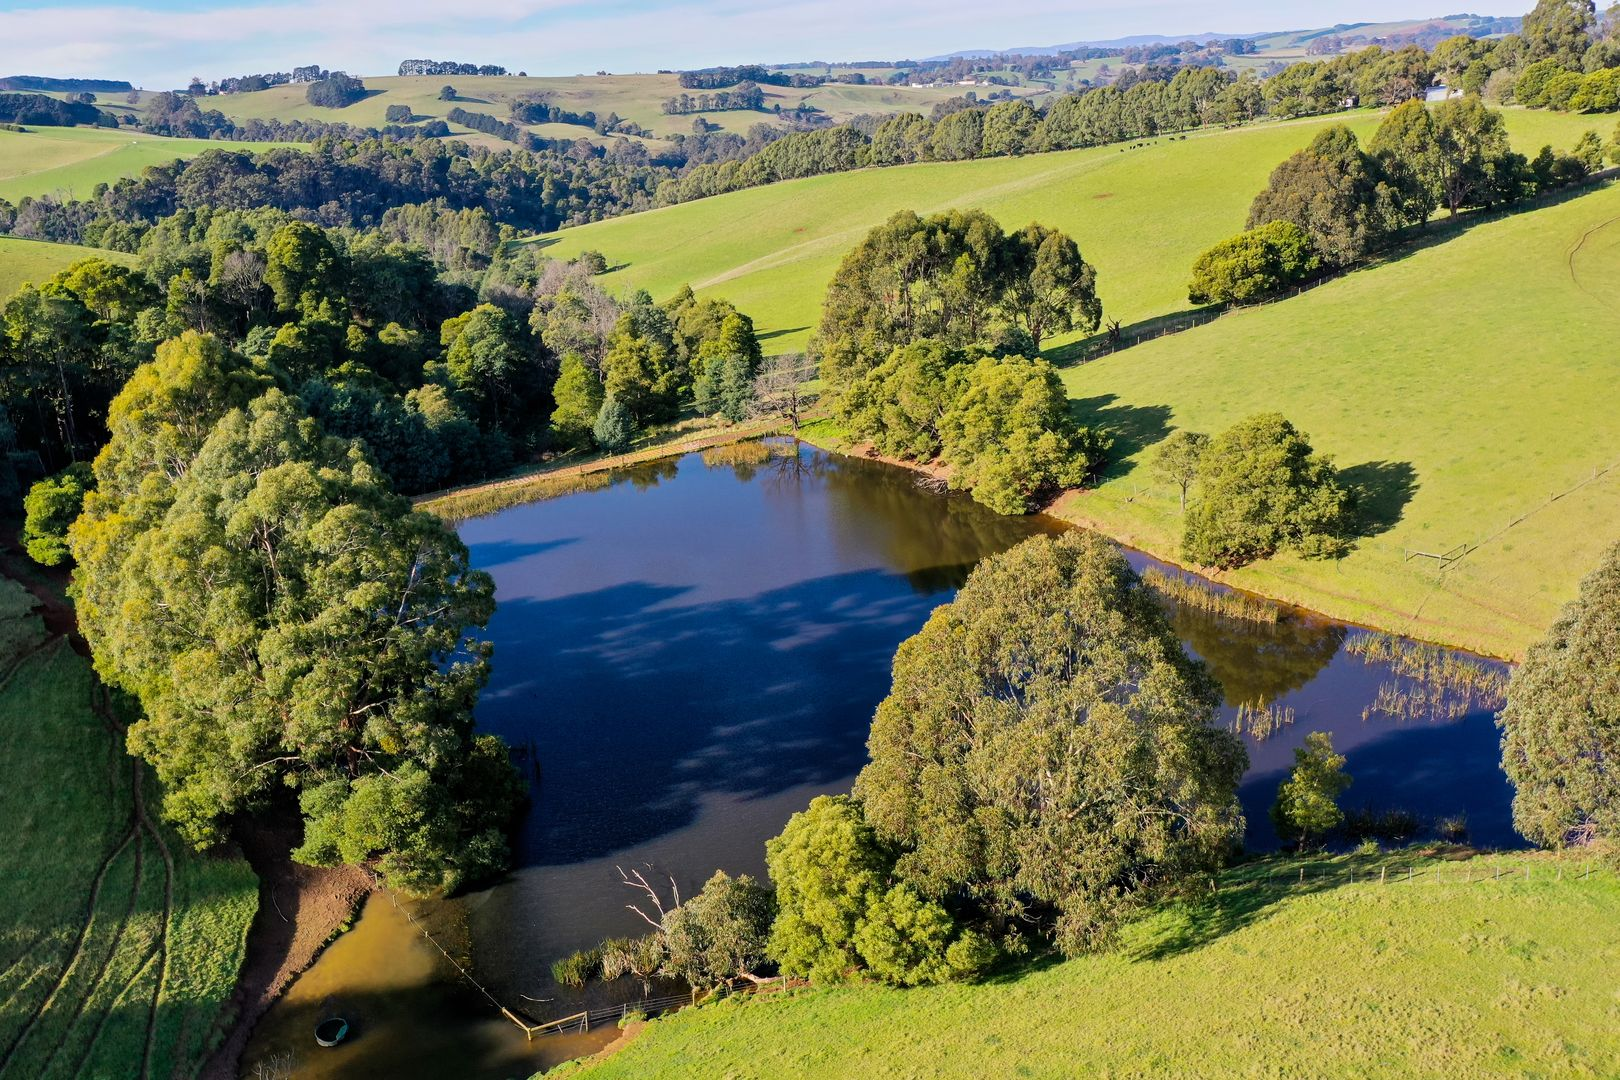 Lot 2 Docksey's Road Childers Via, Thorpdale South VIC 3824, Image 2